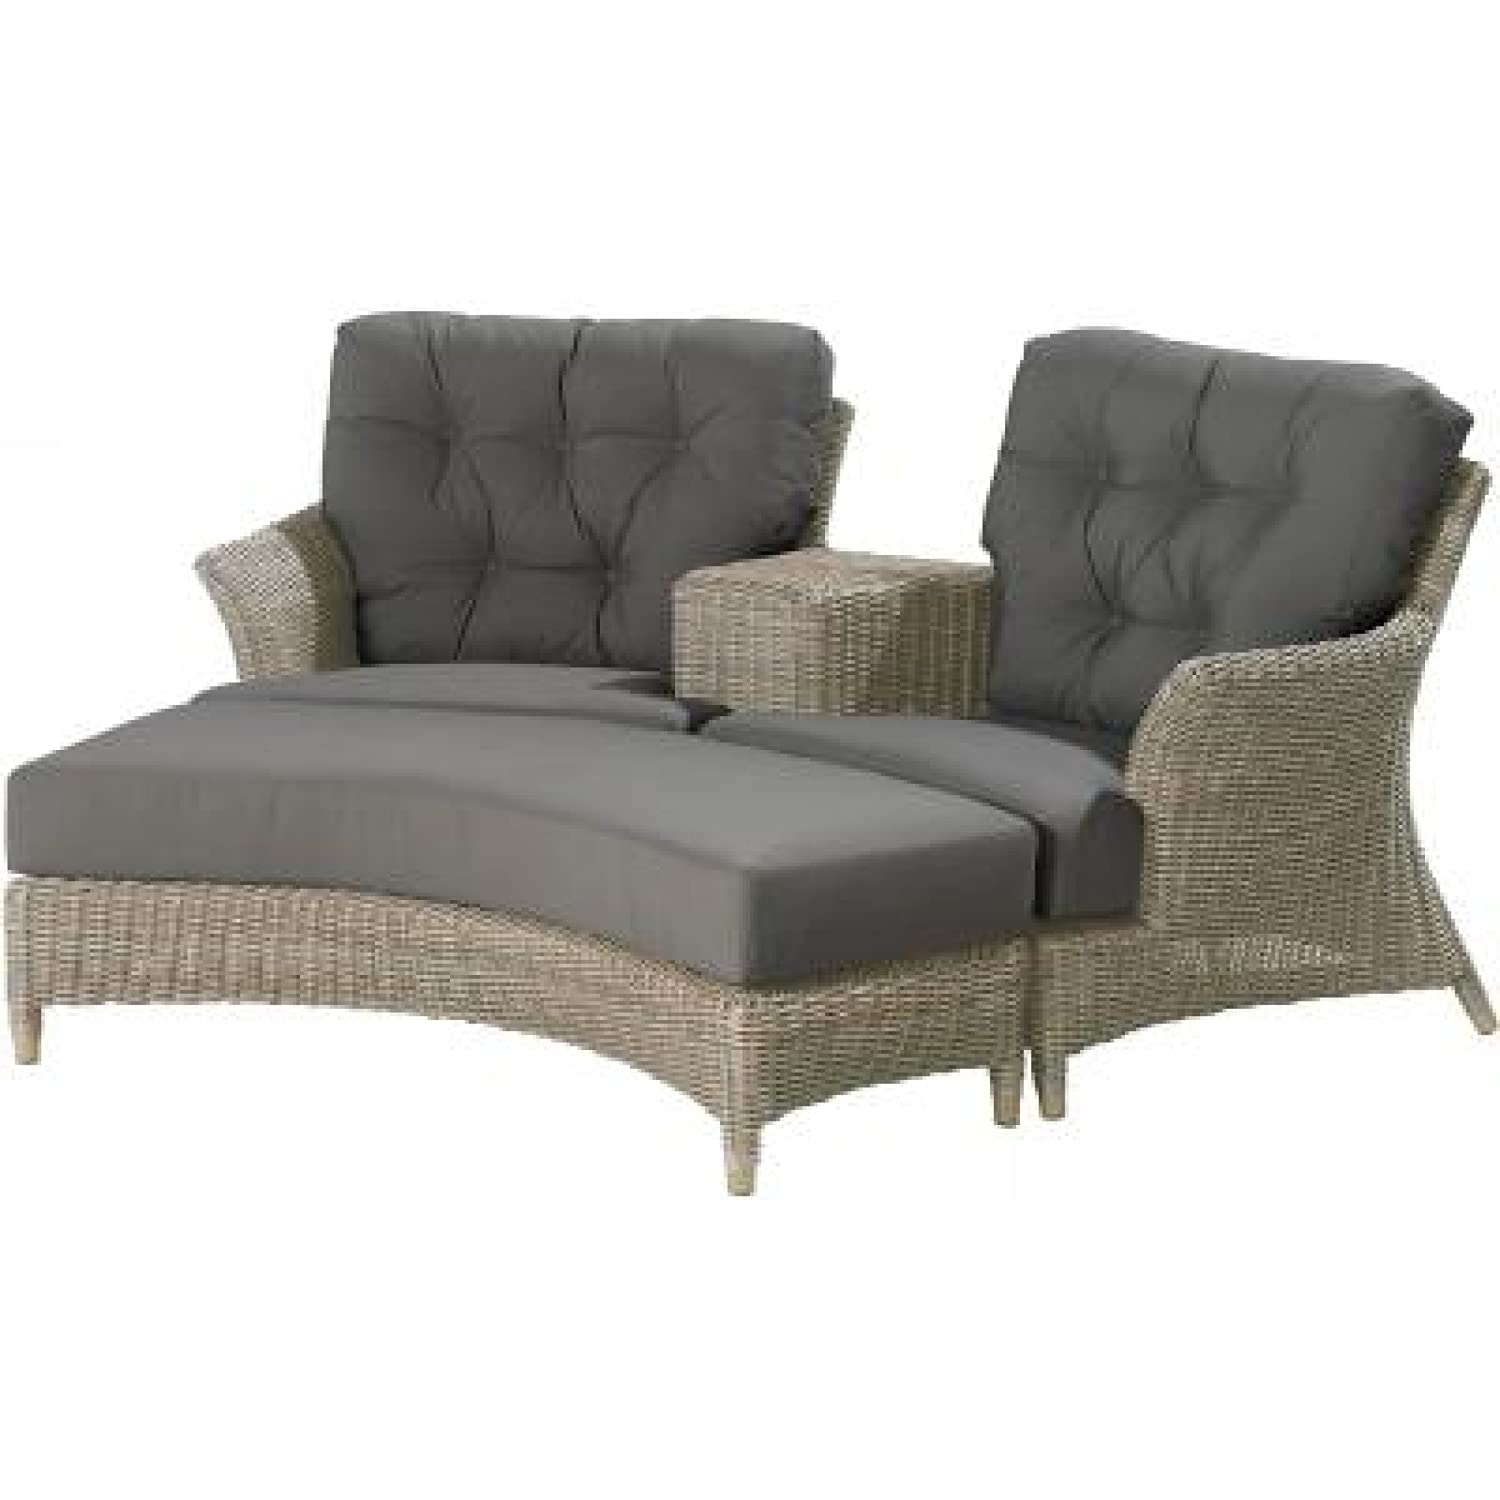 4Seasons Outdoor Valentine Fußhocker für Loveseat Polyrattan pure